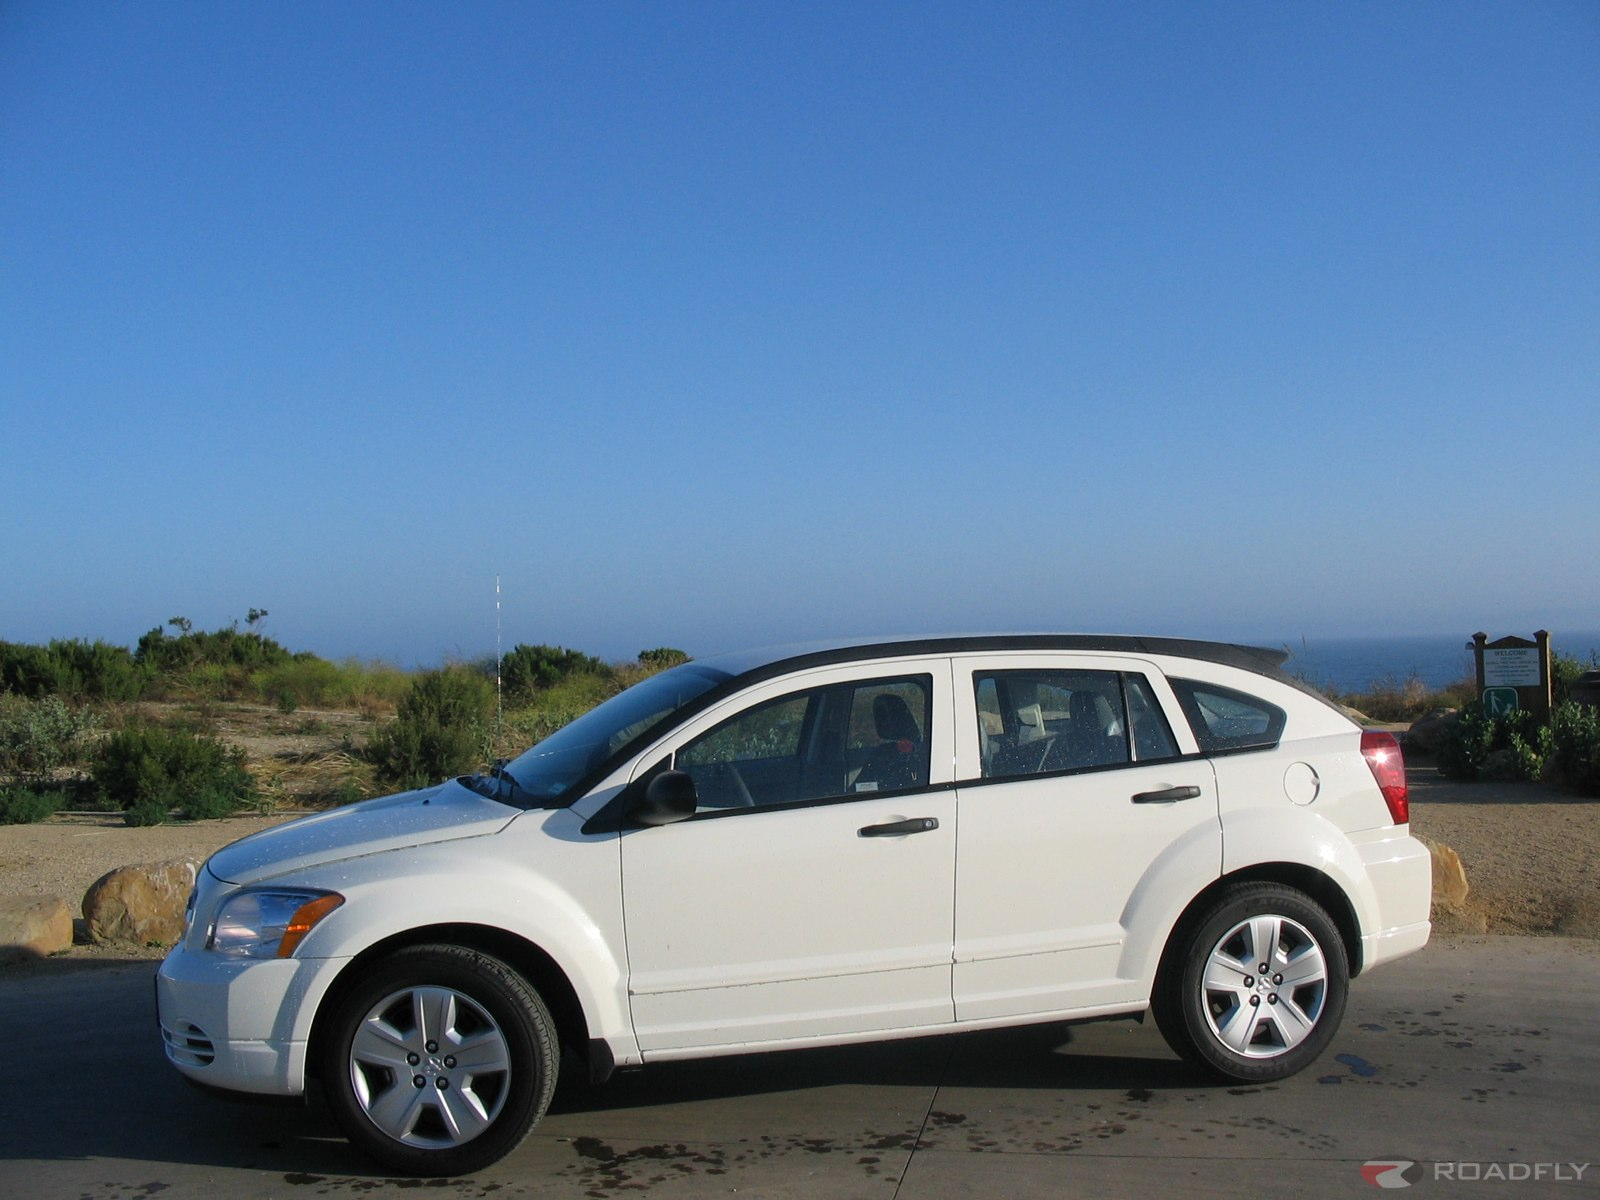 Dodge Caliber photo 06